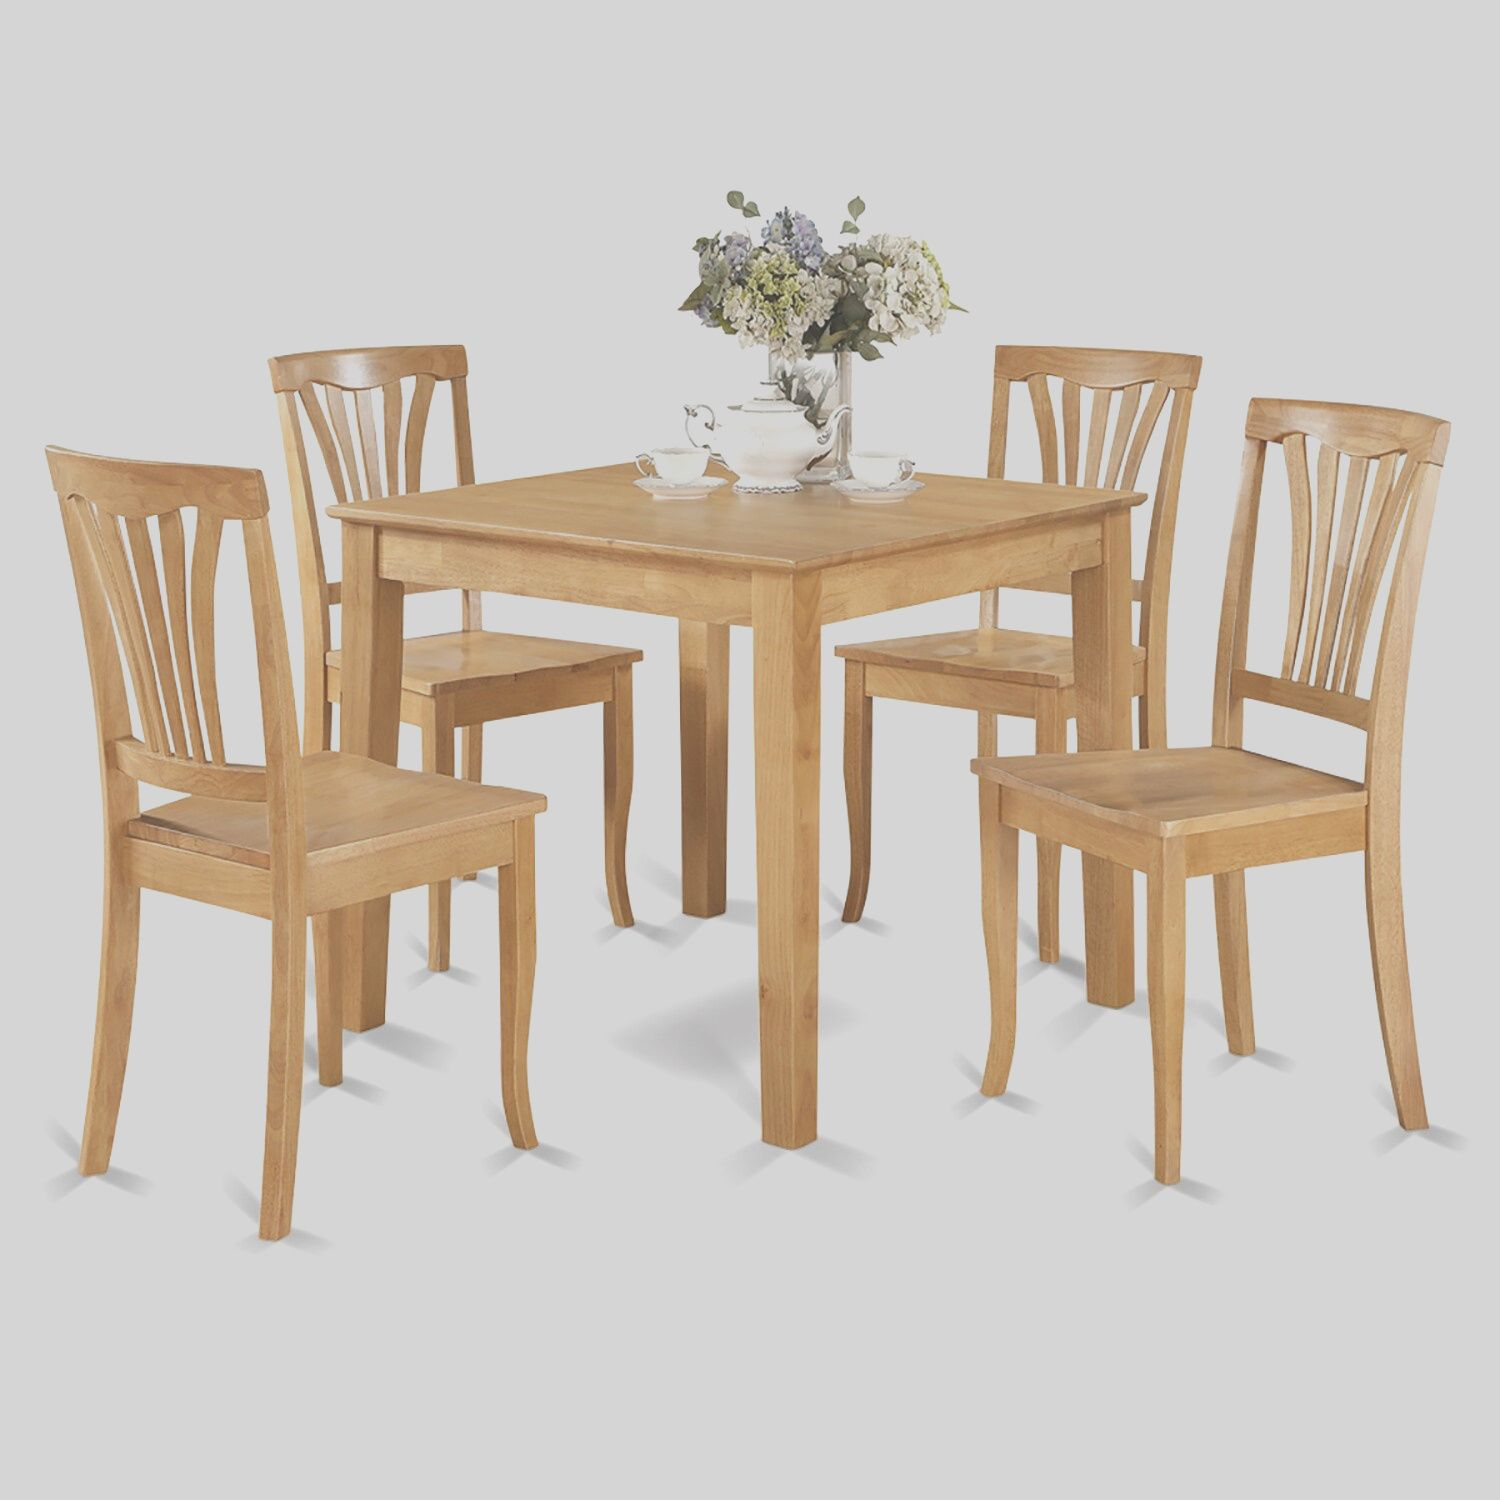 9 Amazing Wayfair Kitchen Dinettes Photography In 2020 Kitchen Table Settings Small Kitchen Tables Square Dining Tables